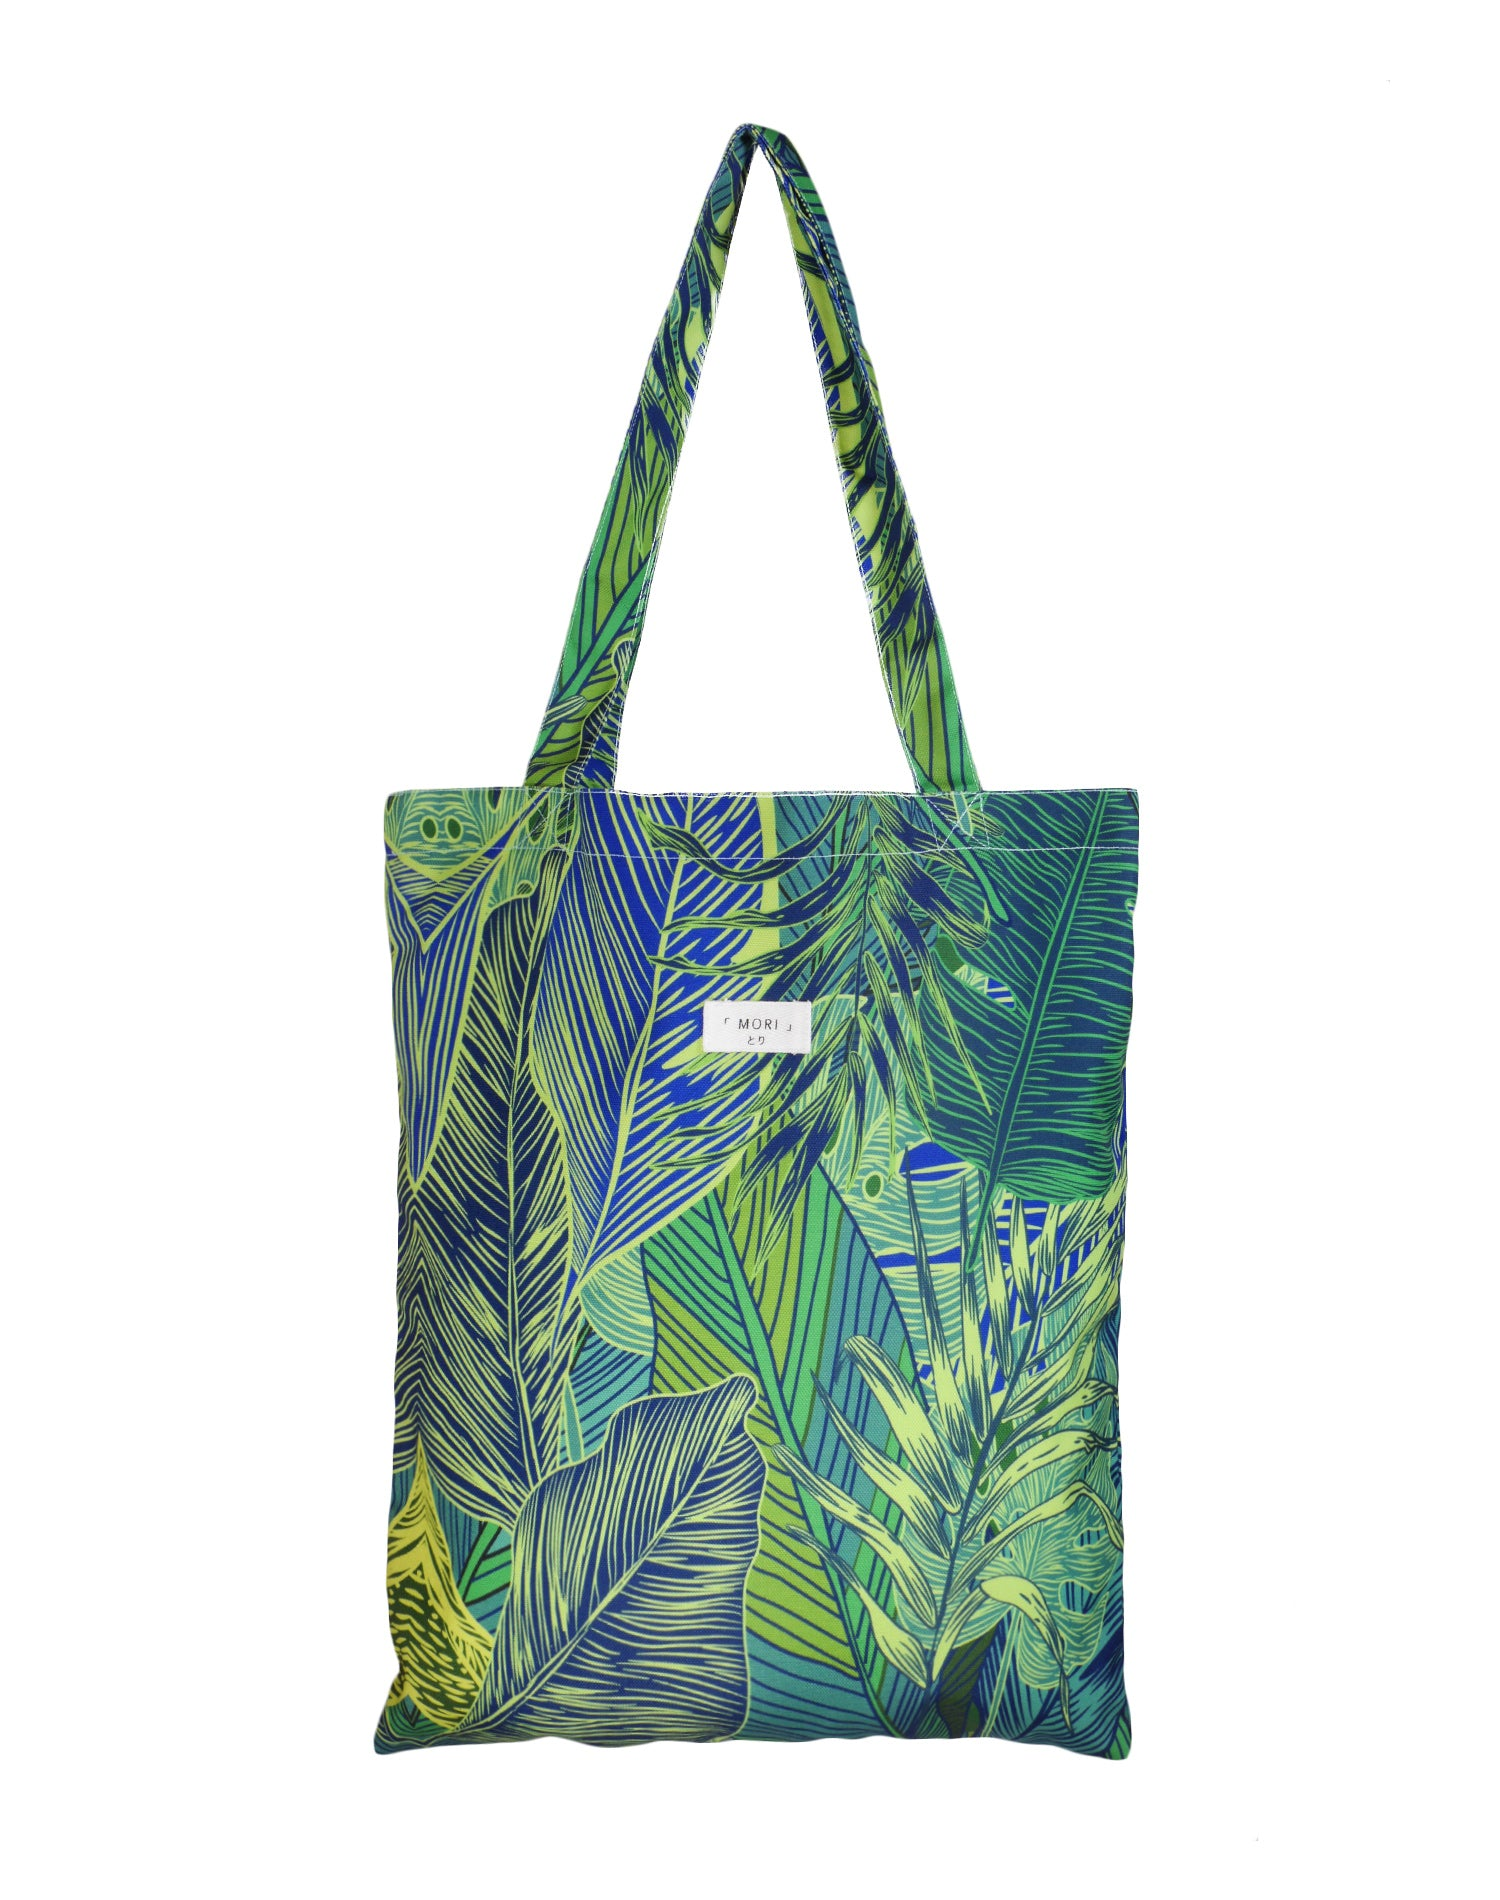 Greenery Summer Canvas Tote Bag.夏日綠蔭帆布側背袋